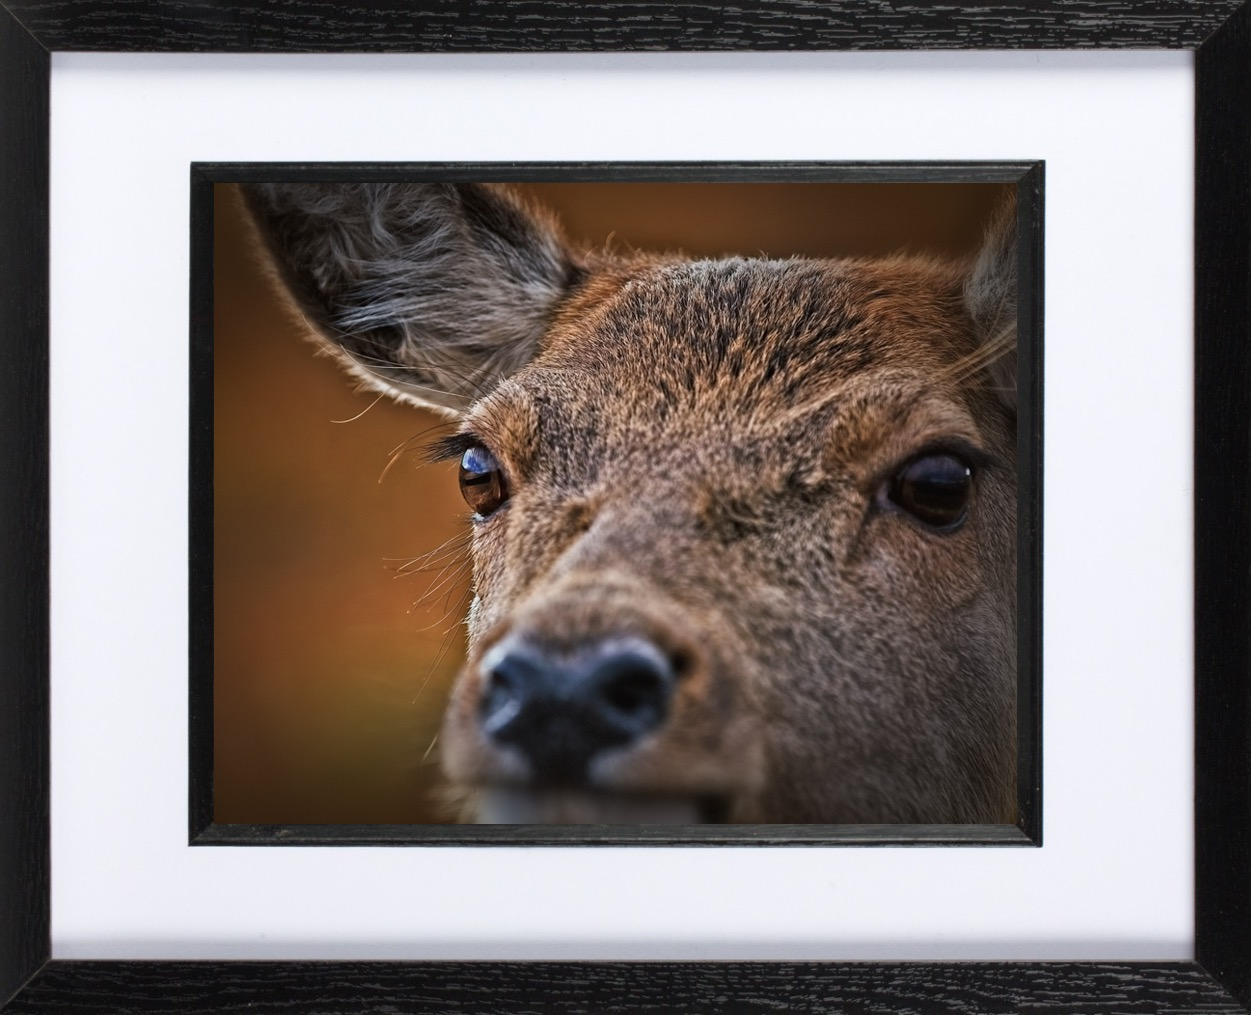 'My very own Bambi' - I saw this image of a young deer at Jim's exhibition last year. When he put it up for sale a few weeks ago I had to have it. The emotion he captures is just brilliant. This is now the picture I see when I walk into my living room.Carol Leatherbarrow, Leith.